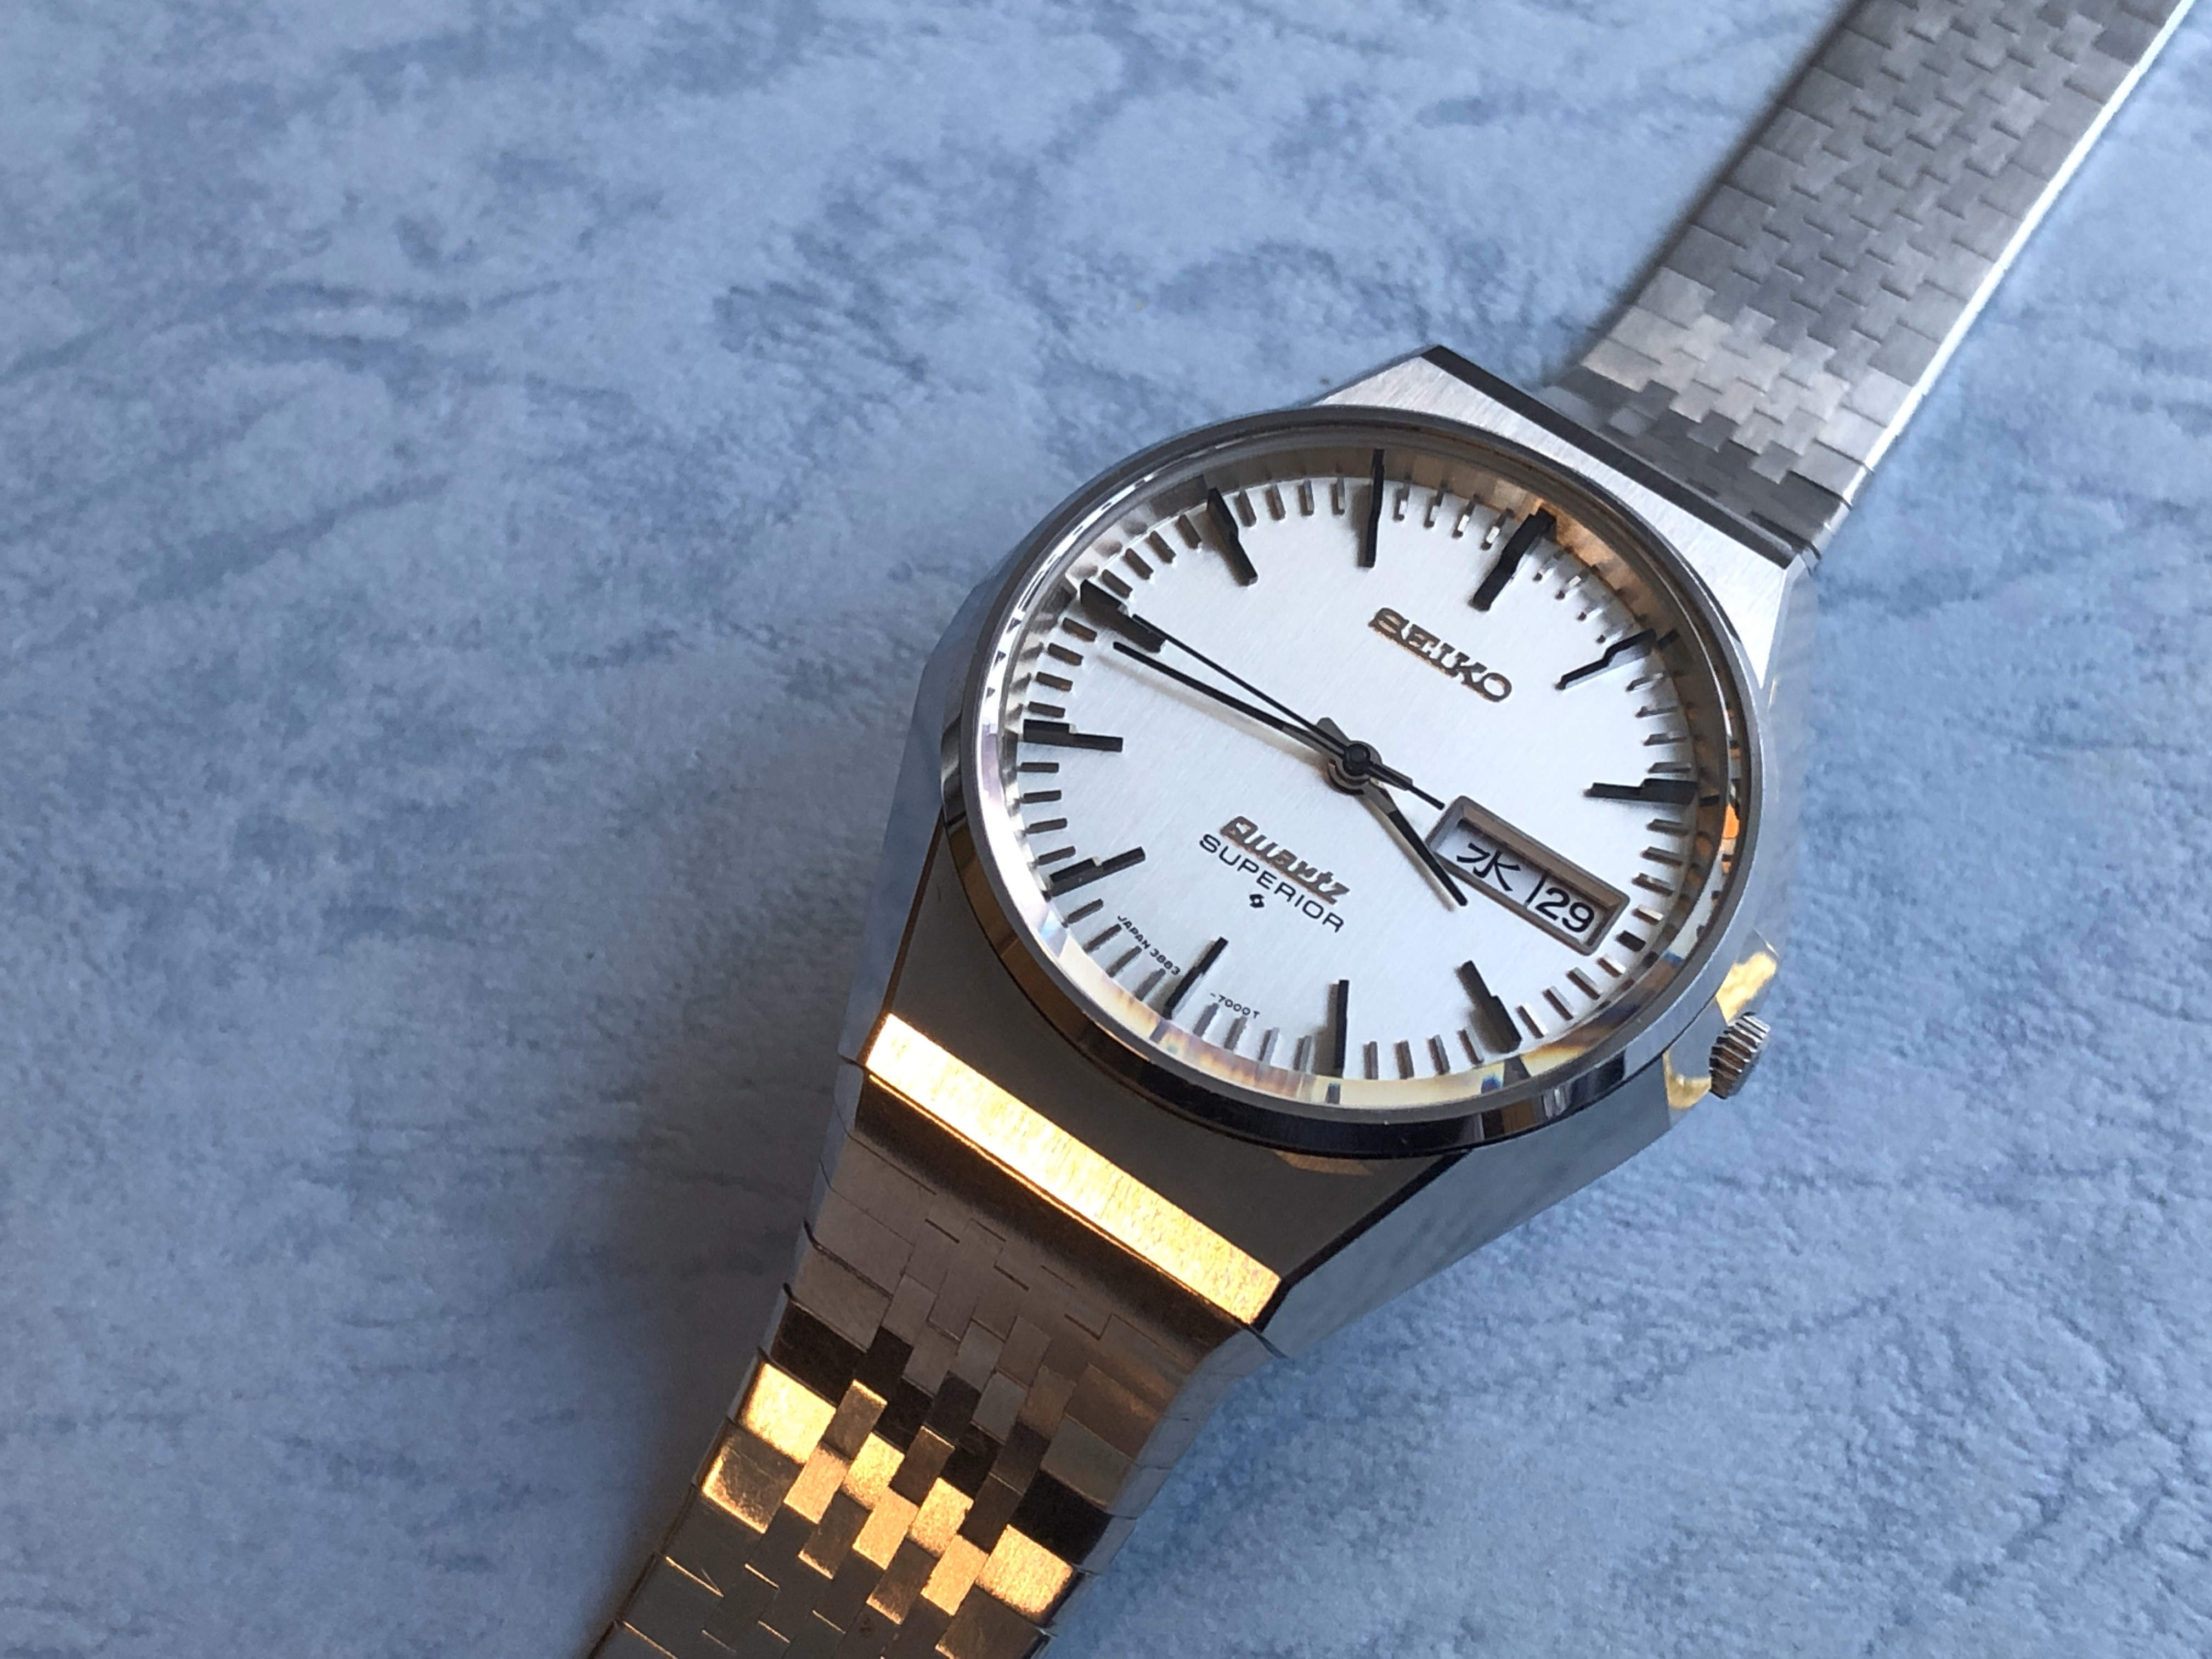 Seiko Superior 3883-7000 (Sold)